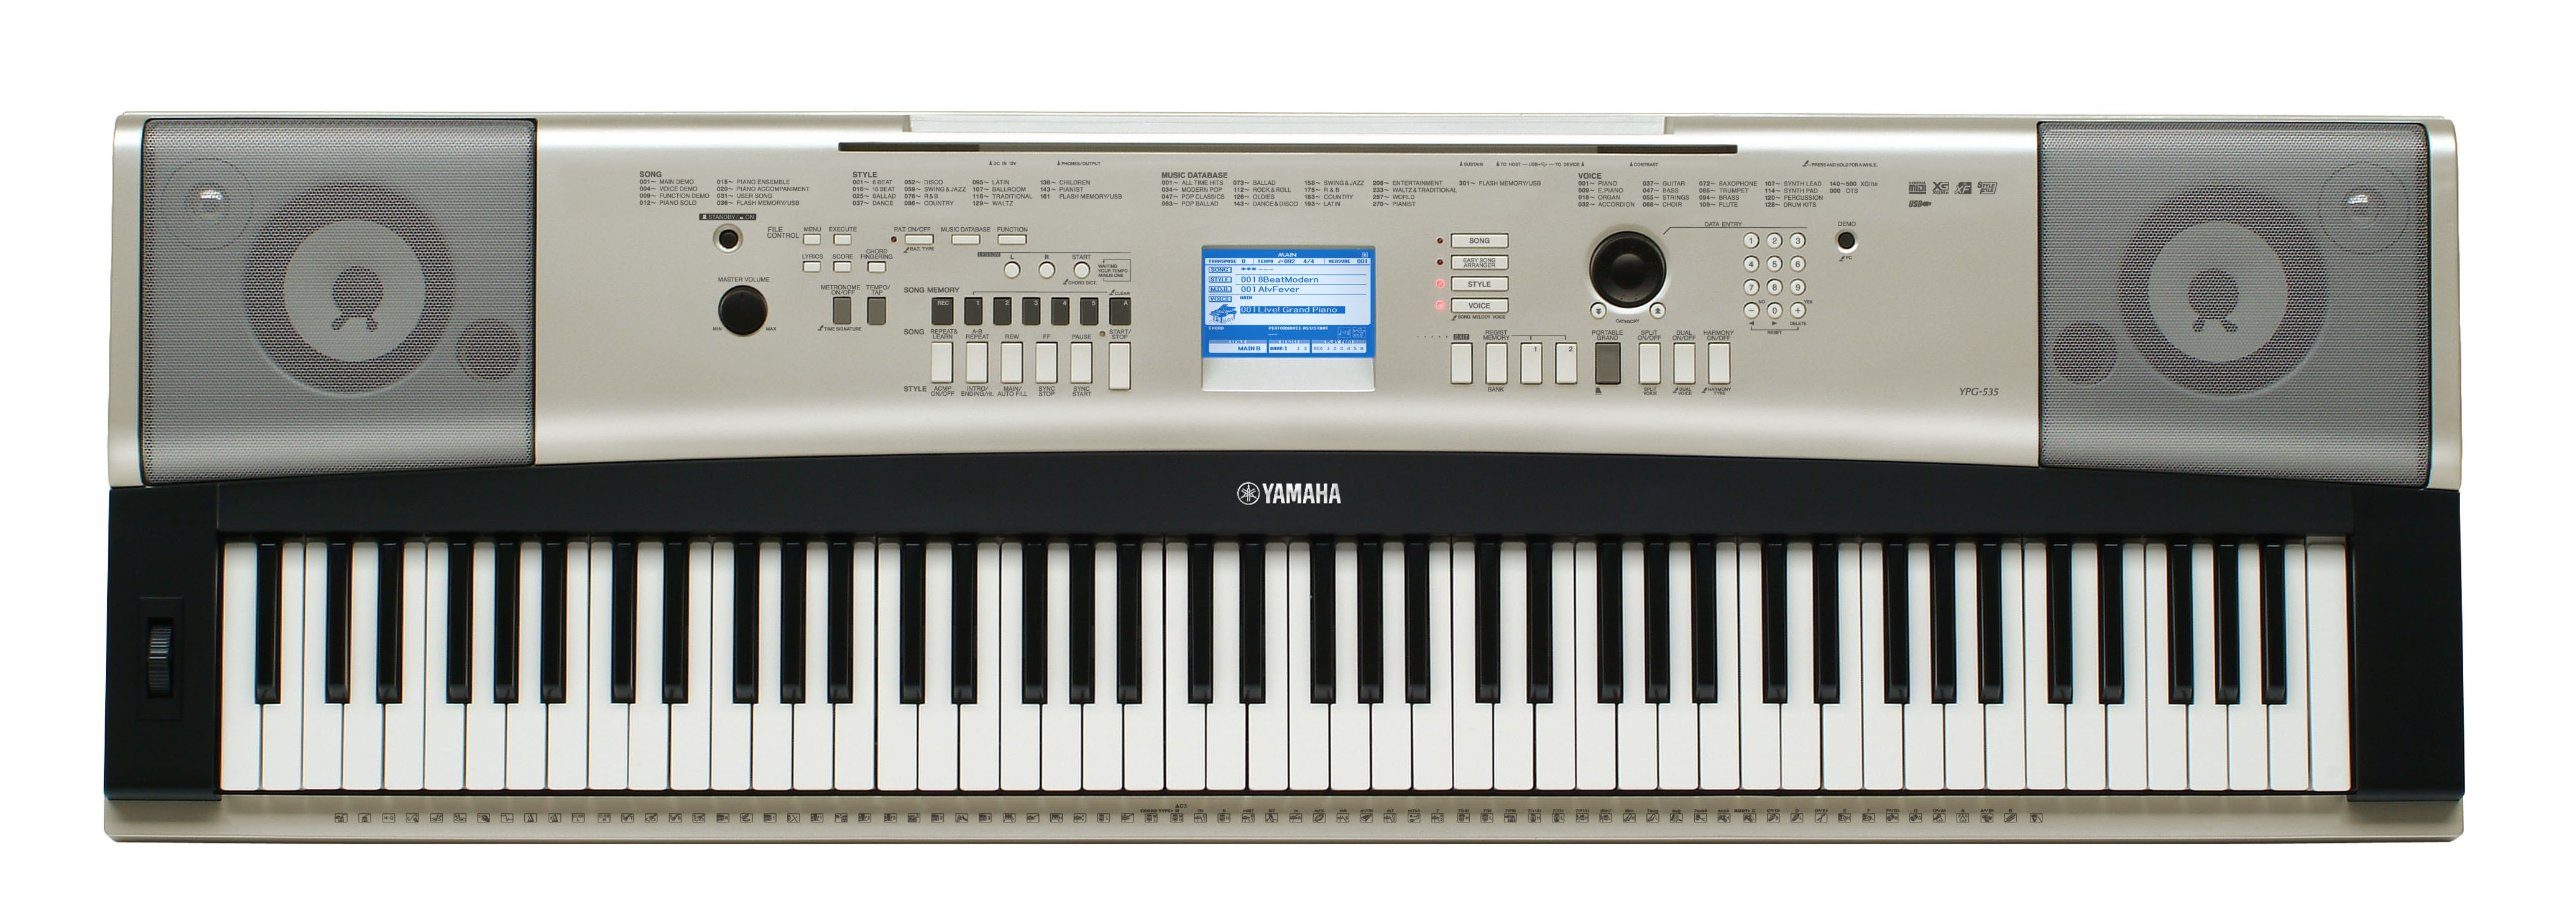 1. Yamaha YPG-535 Portable Grand Piano